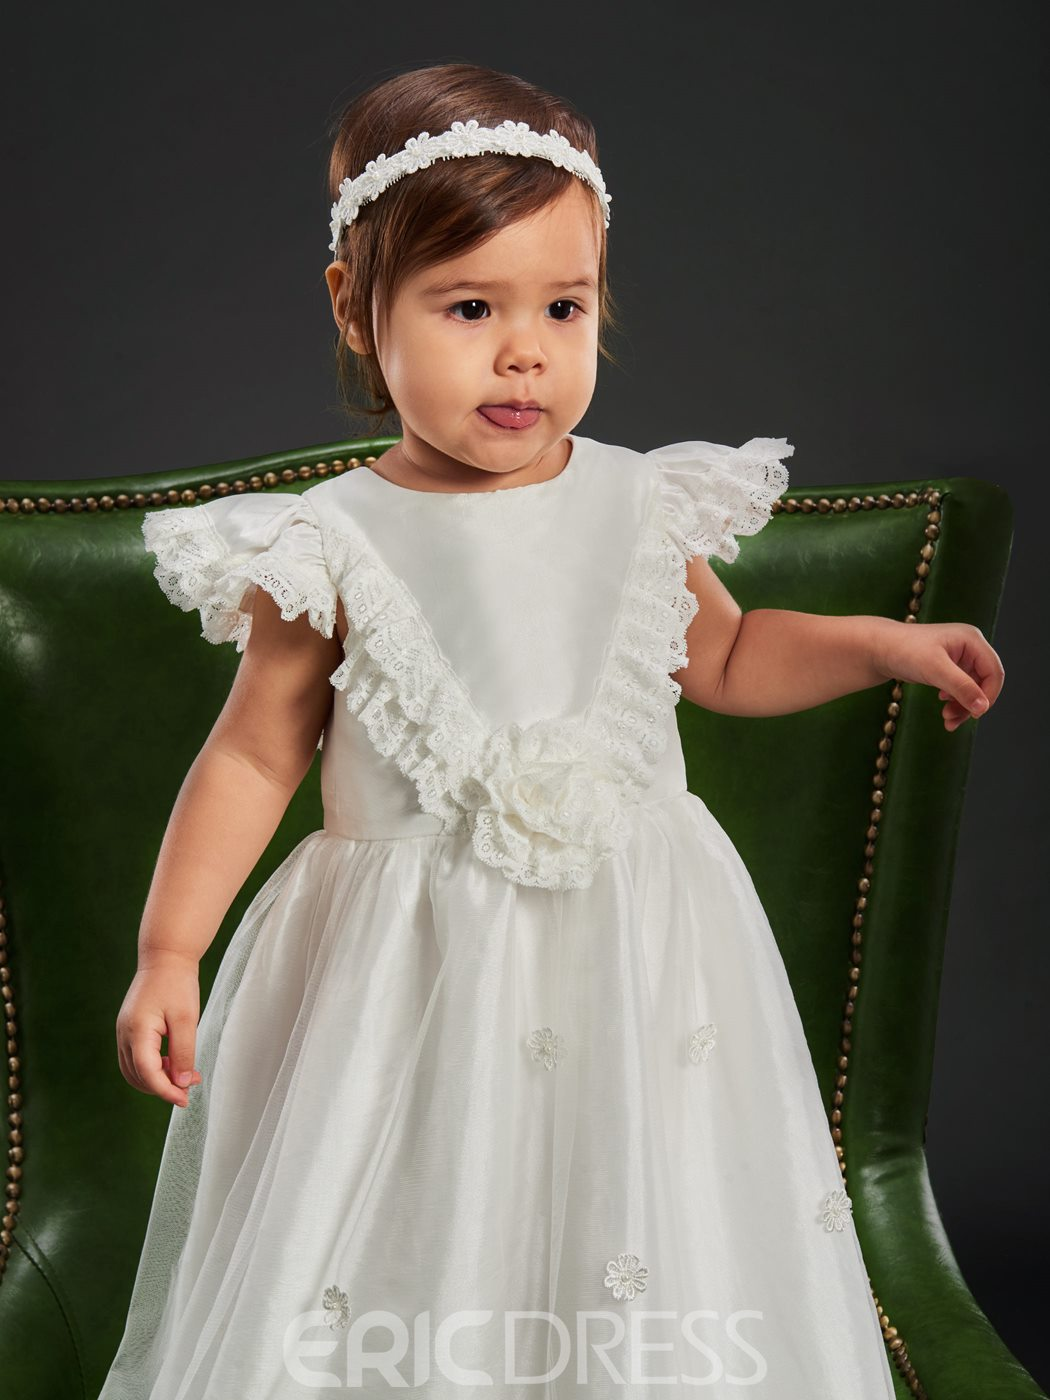 Ericdress Simple Chiffon Cap Sleeves Christening Gown for Baby Girl